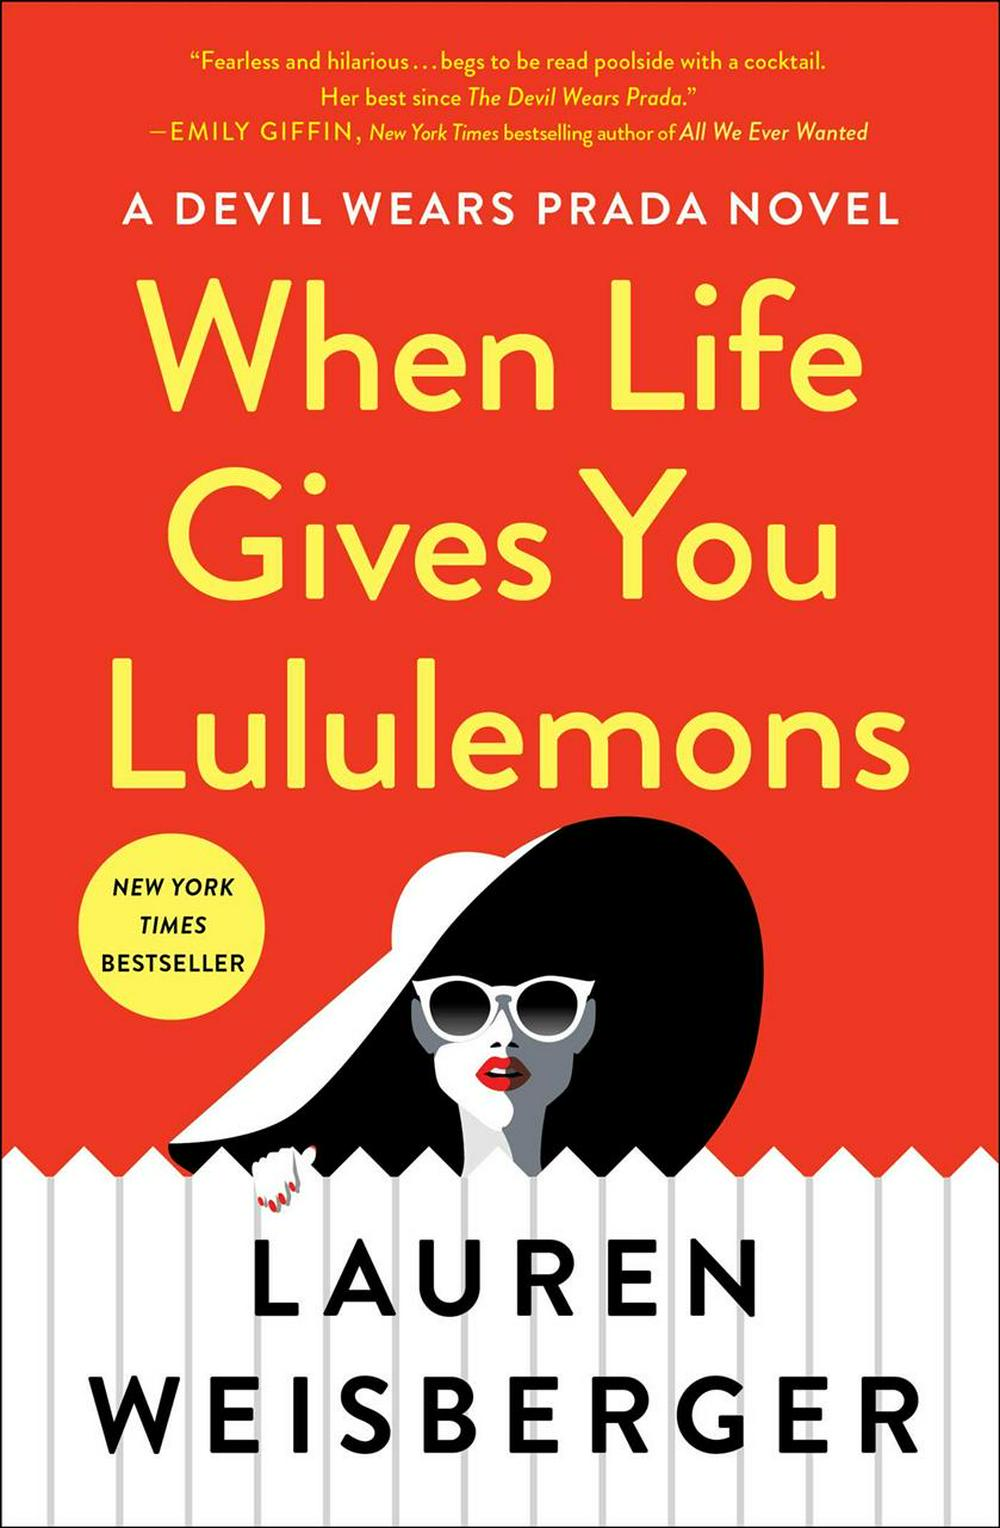 When Life Gives You Lululemons by Lauren Weisberger, ISBN: 9781476778440